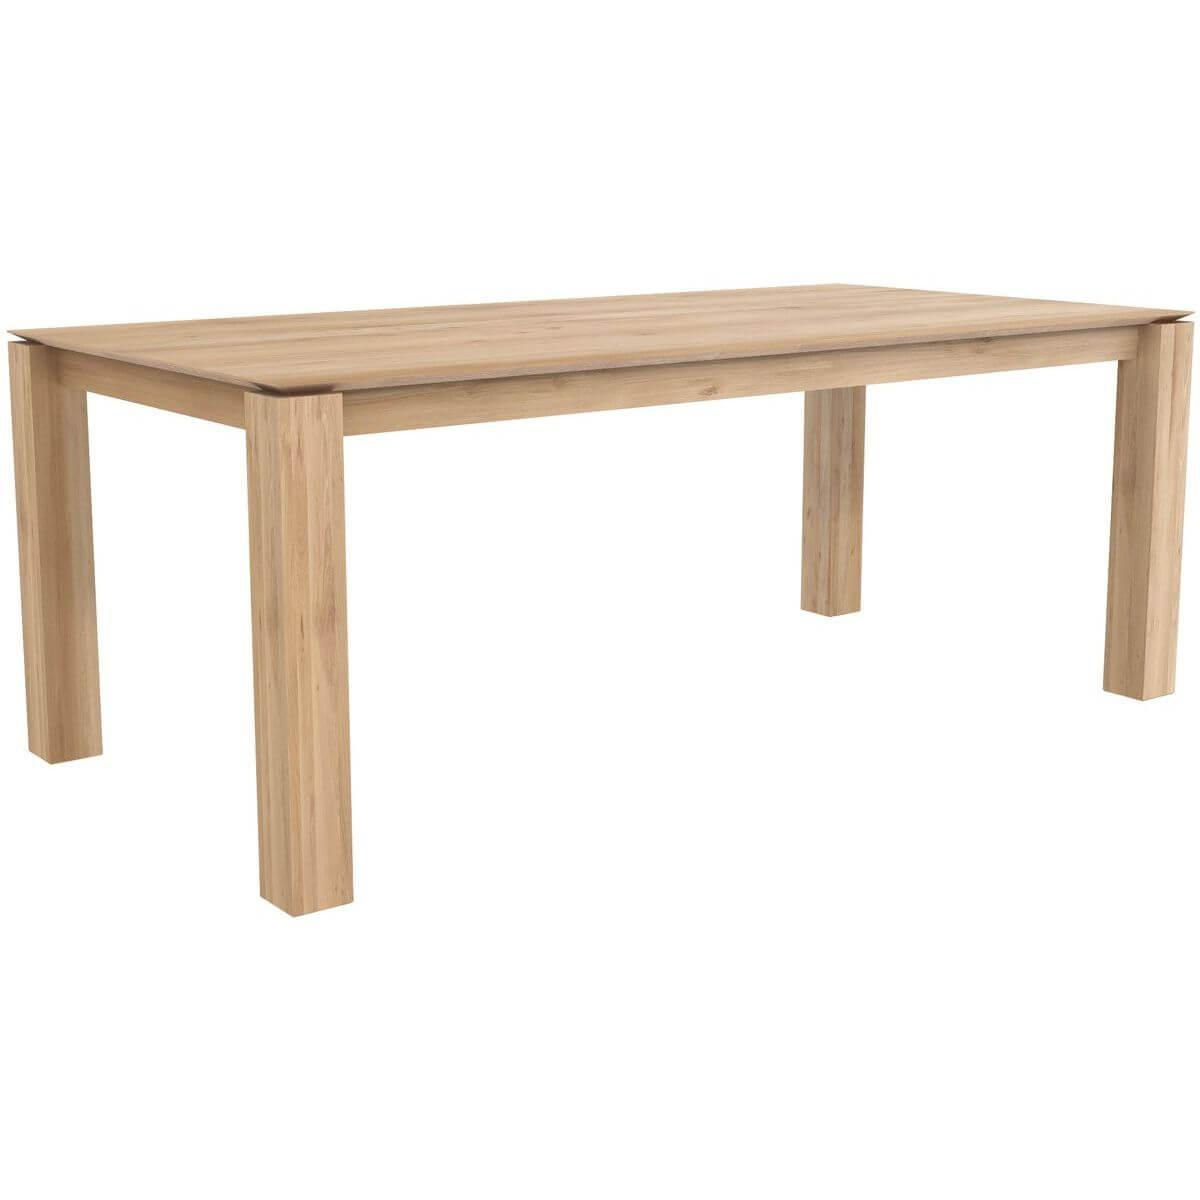 SLICE by Ethnicraft Table